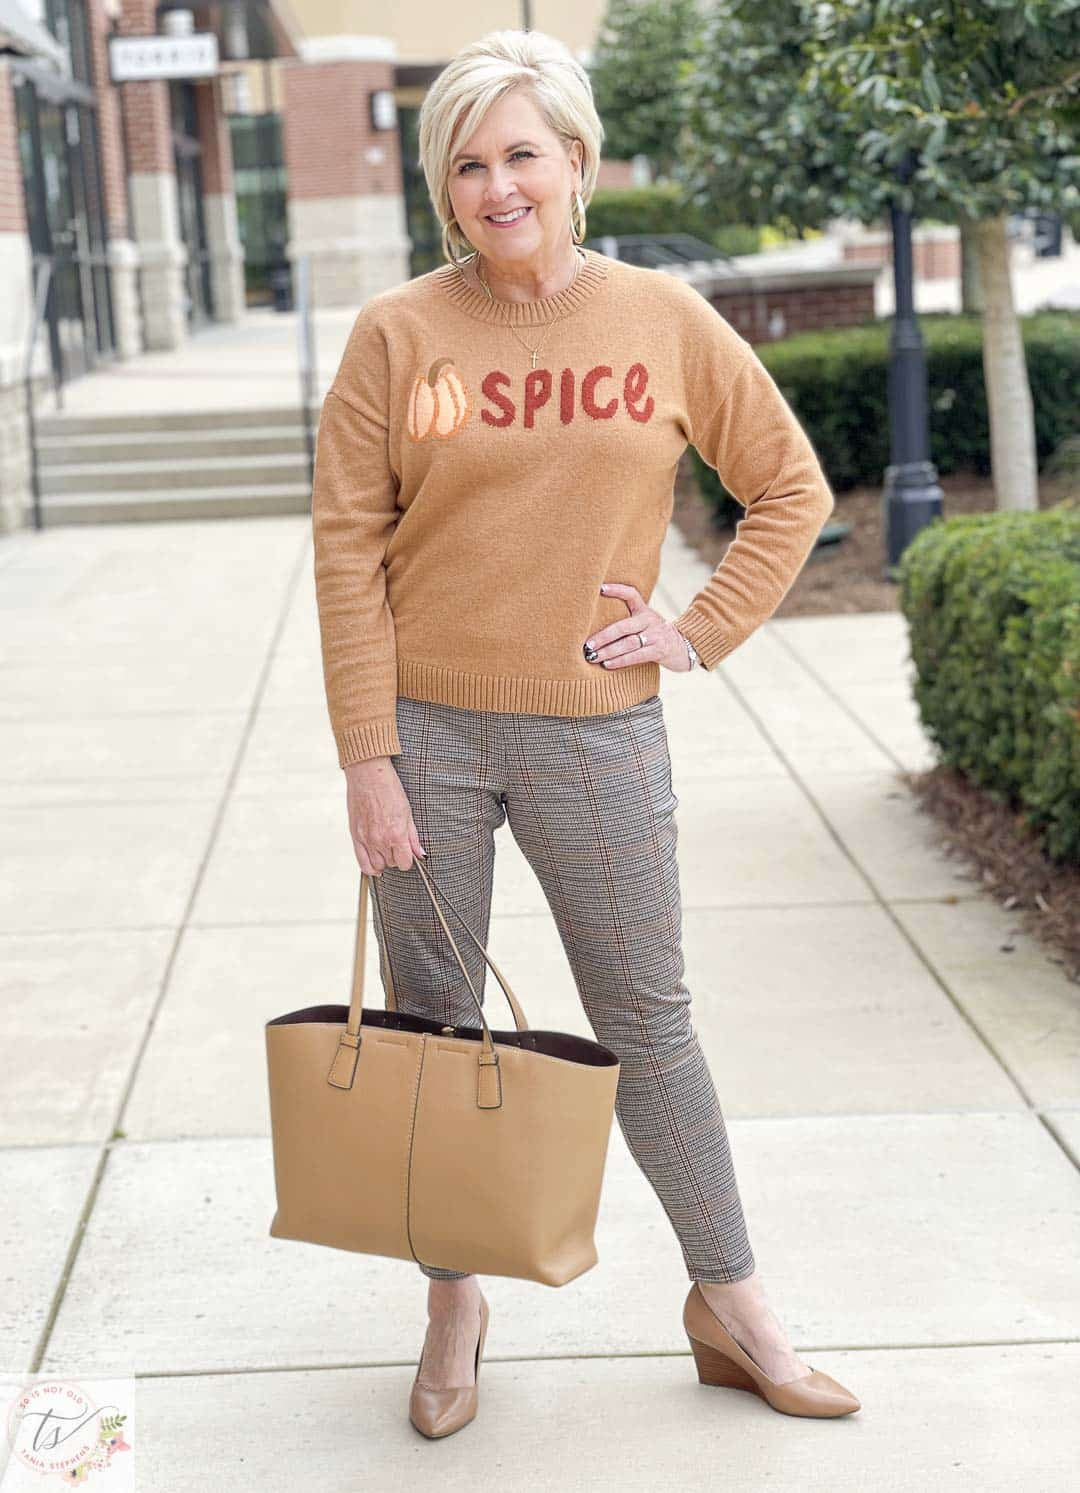 Over 40 Fashion Blogger, Tania Stephens, is wearing a Pumpkin Spice sweater with a pair plaid Ponte knit pants and taupe wedges